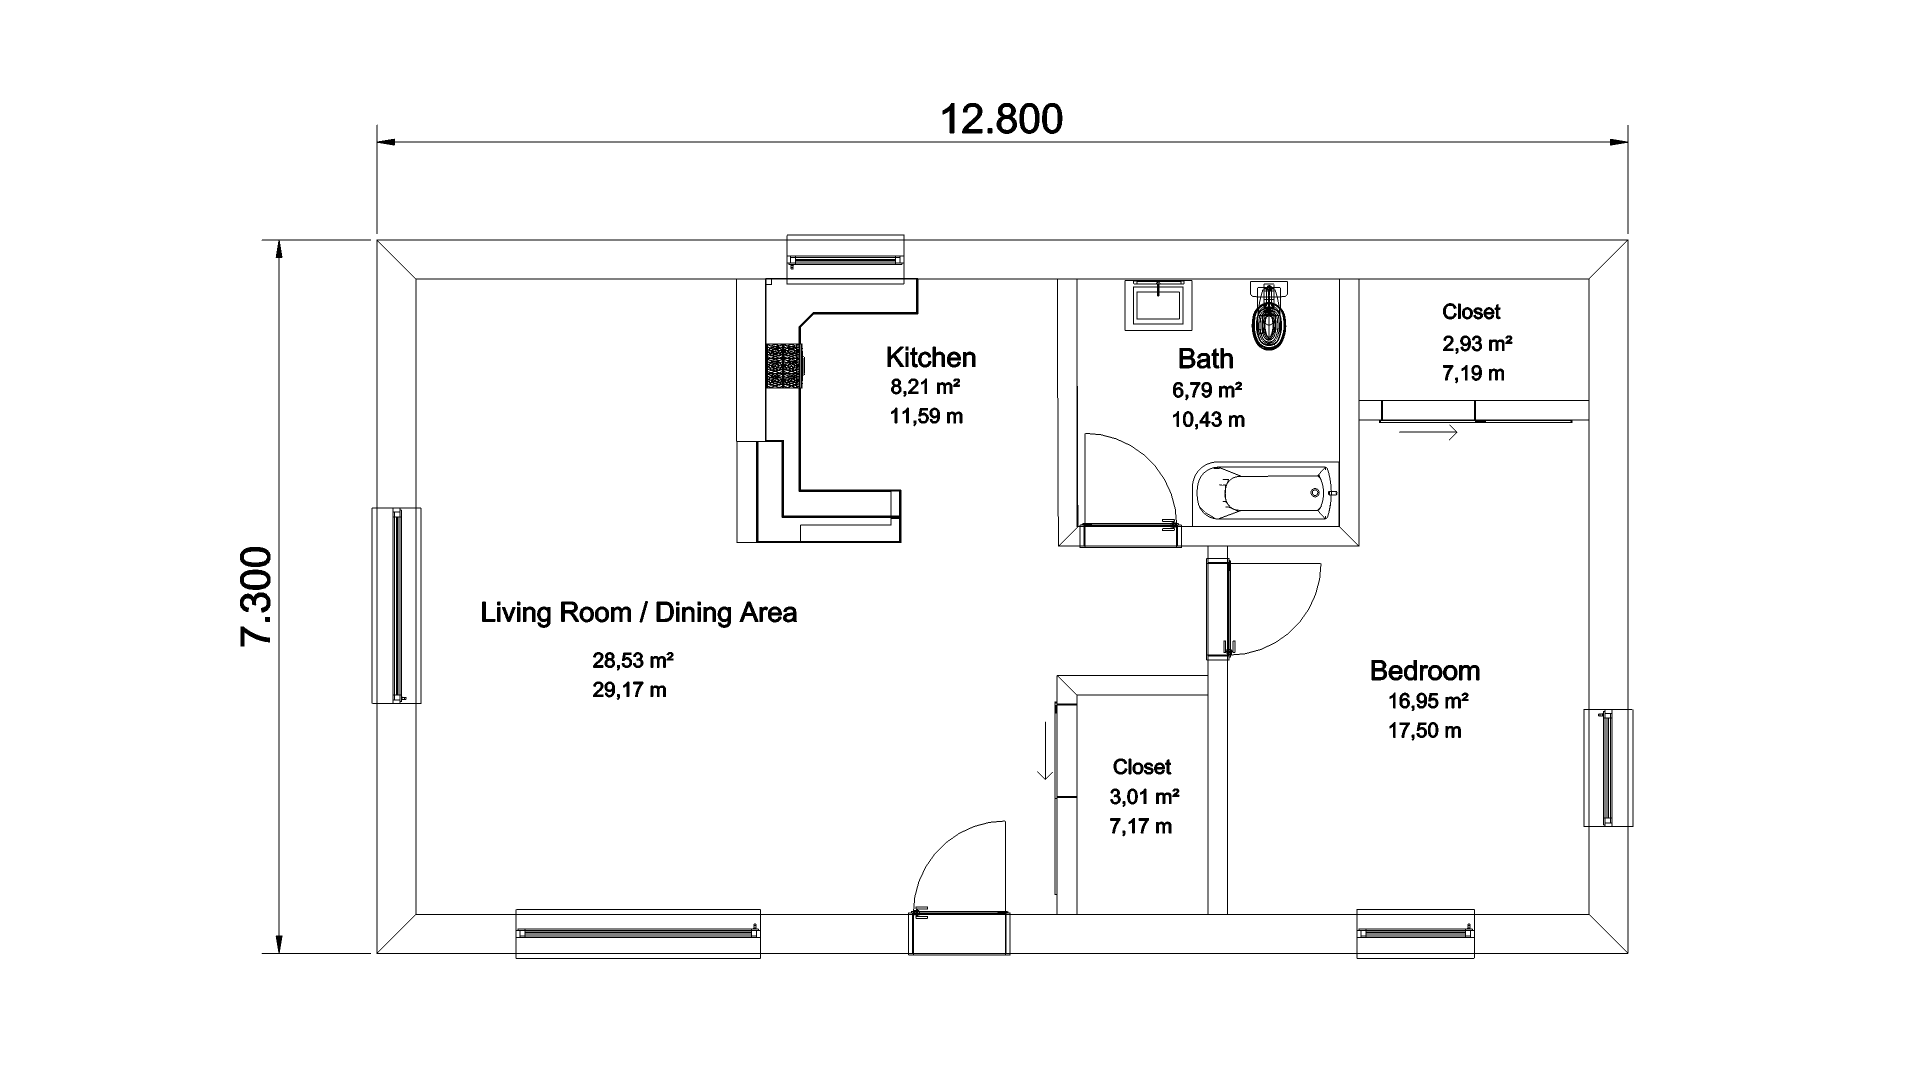 Creating floor plans for real estate listings pcon blog for Basic home floor plans